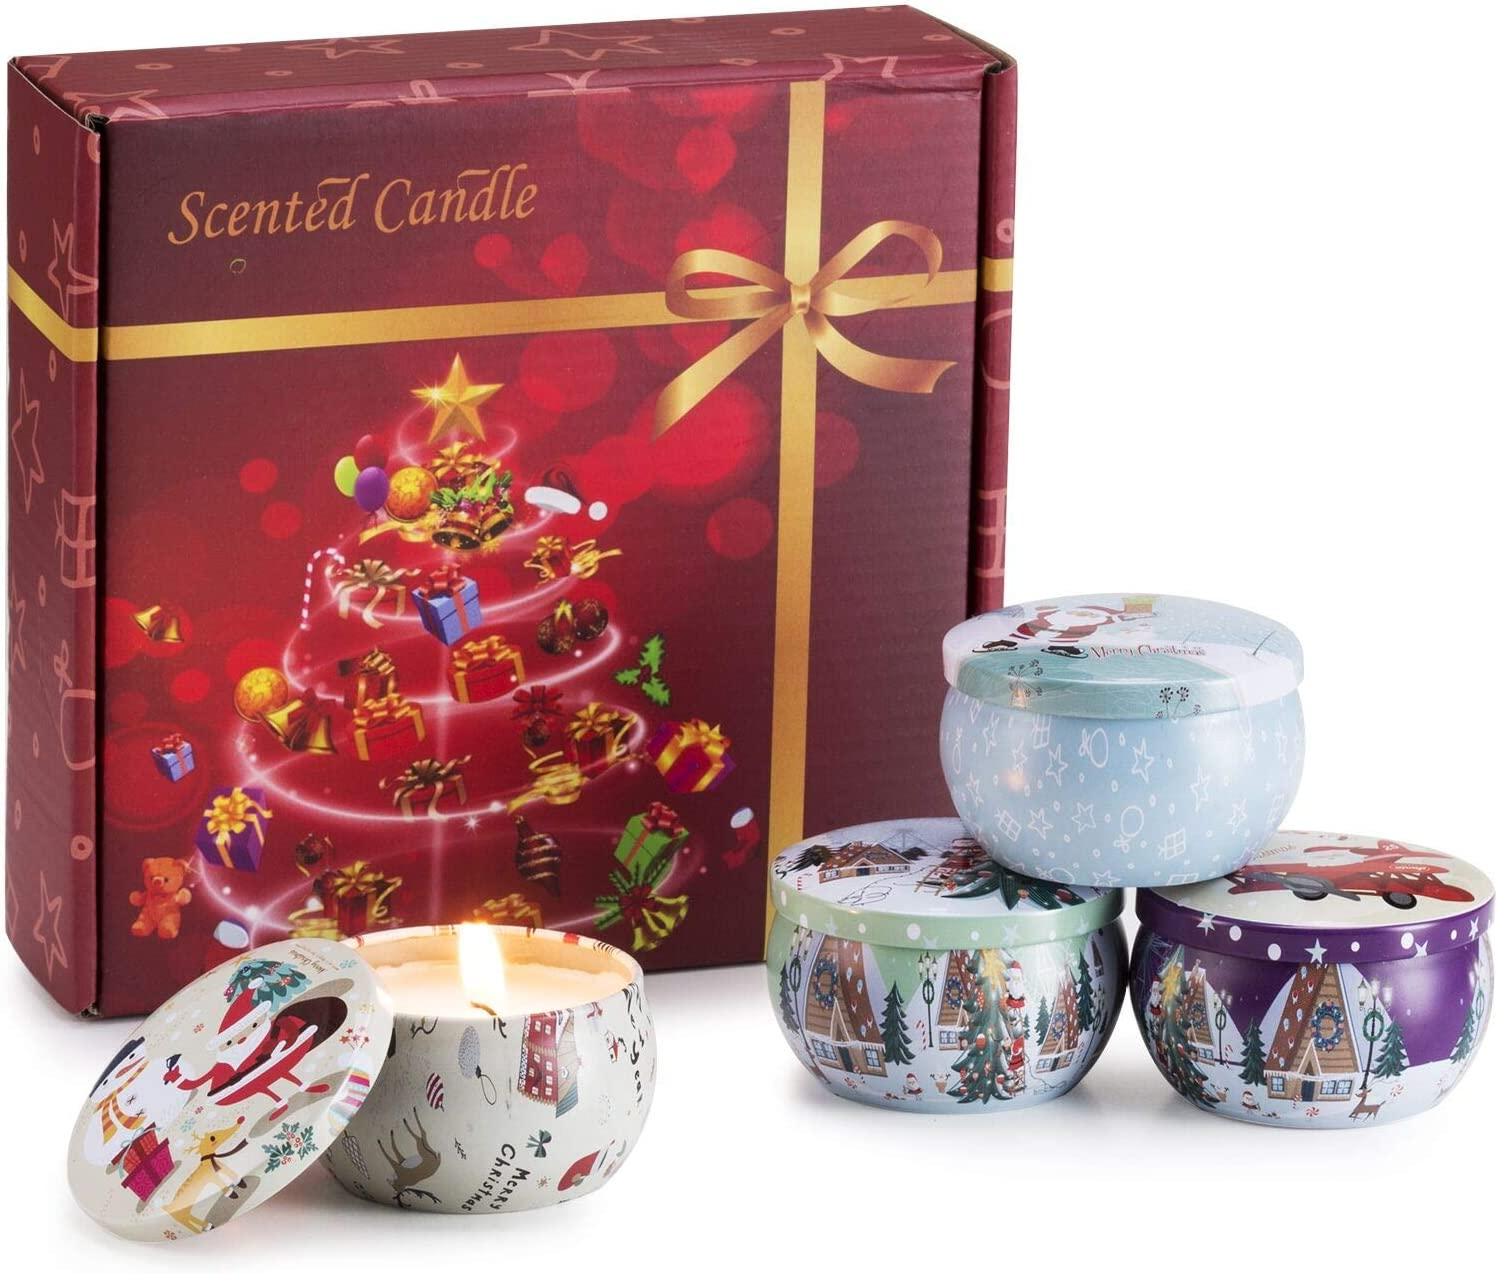 Scented Candles Set for Christmas-Candles for Home Scented,Stress Relief Soy Candles 2.5 Oz,Travel Tin Relaxing Candle with Strongly Fragrance Essential Oils for Aromatherapy,for Bath,Spa,Meditation